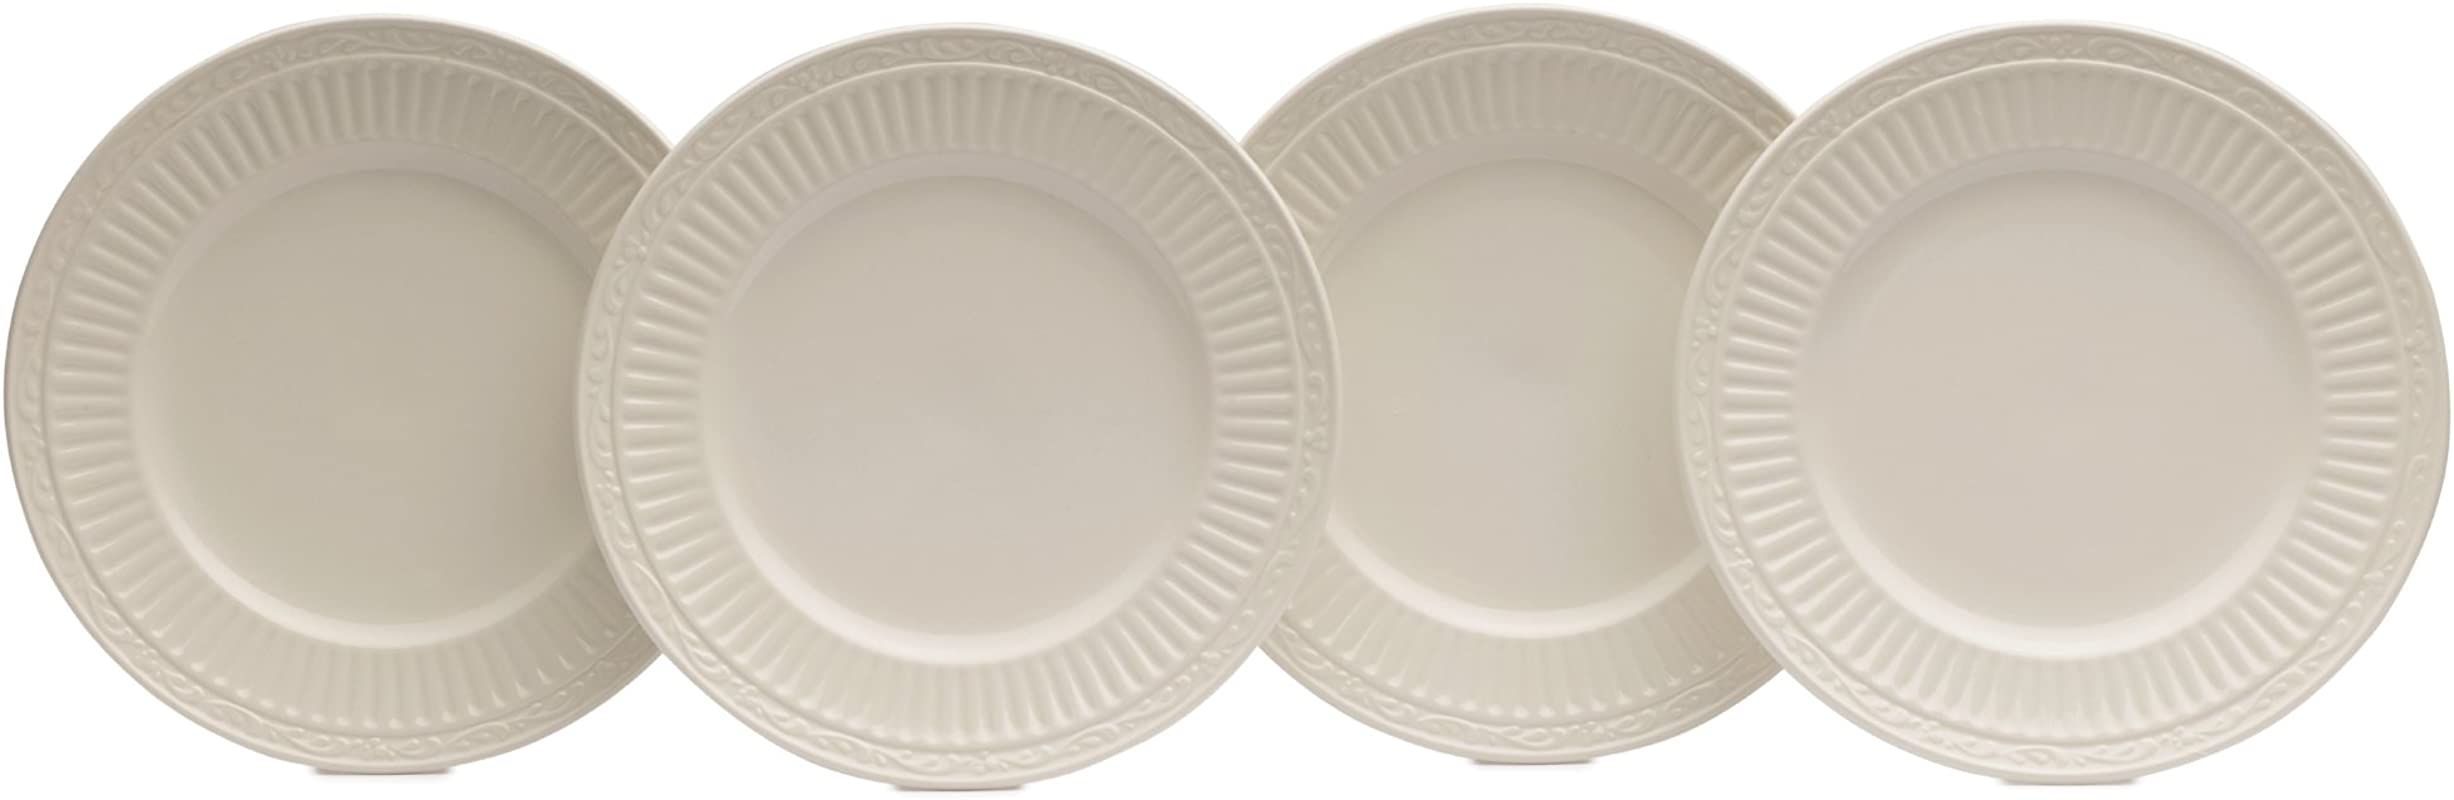 Mikasa Italian Countryside Bread And Butter Plate 7 Inch Set Of 4